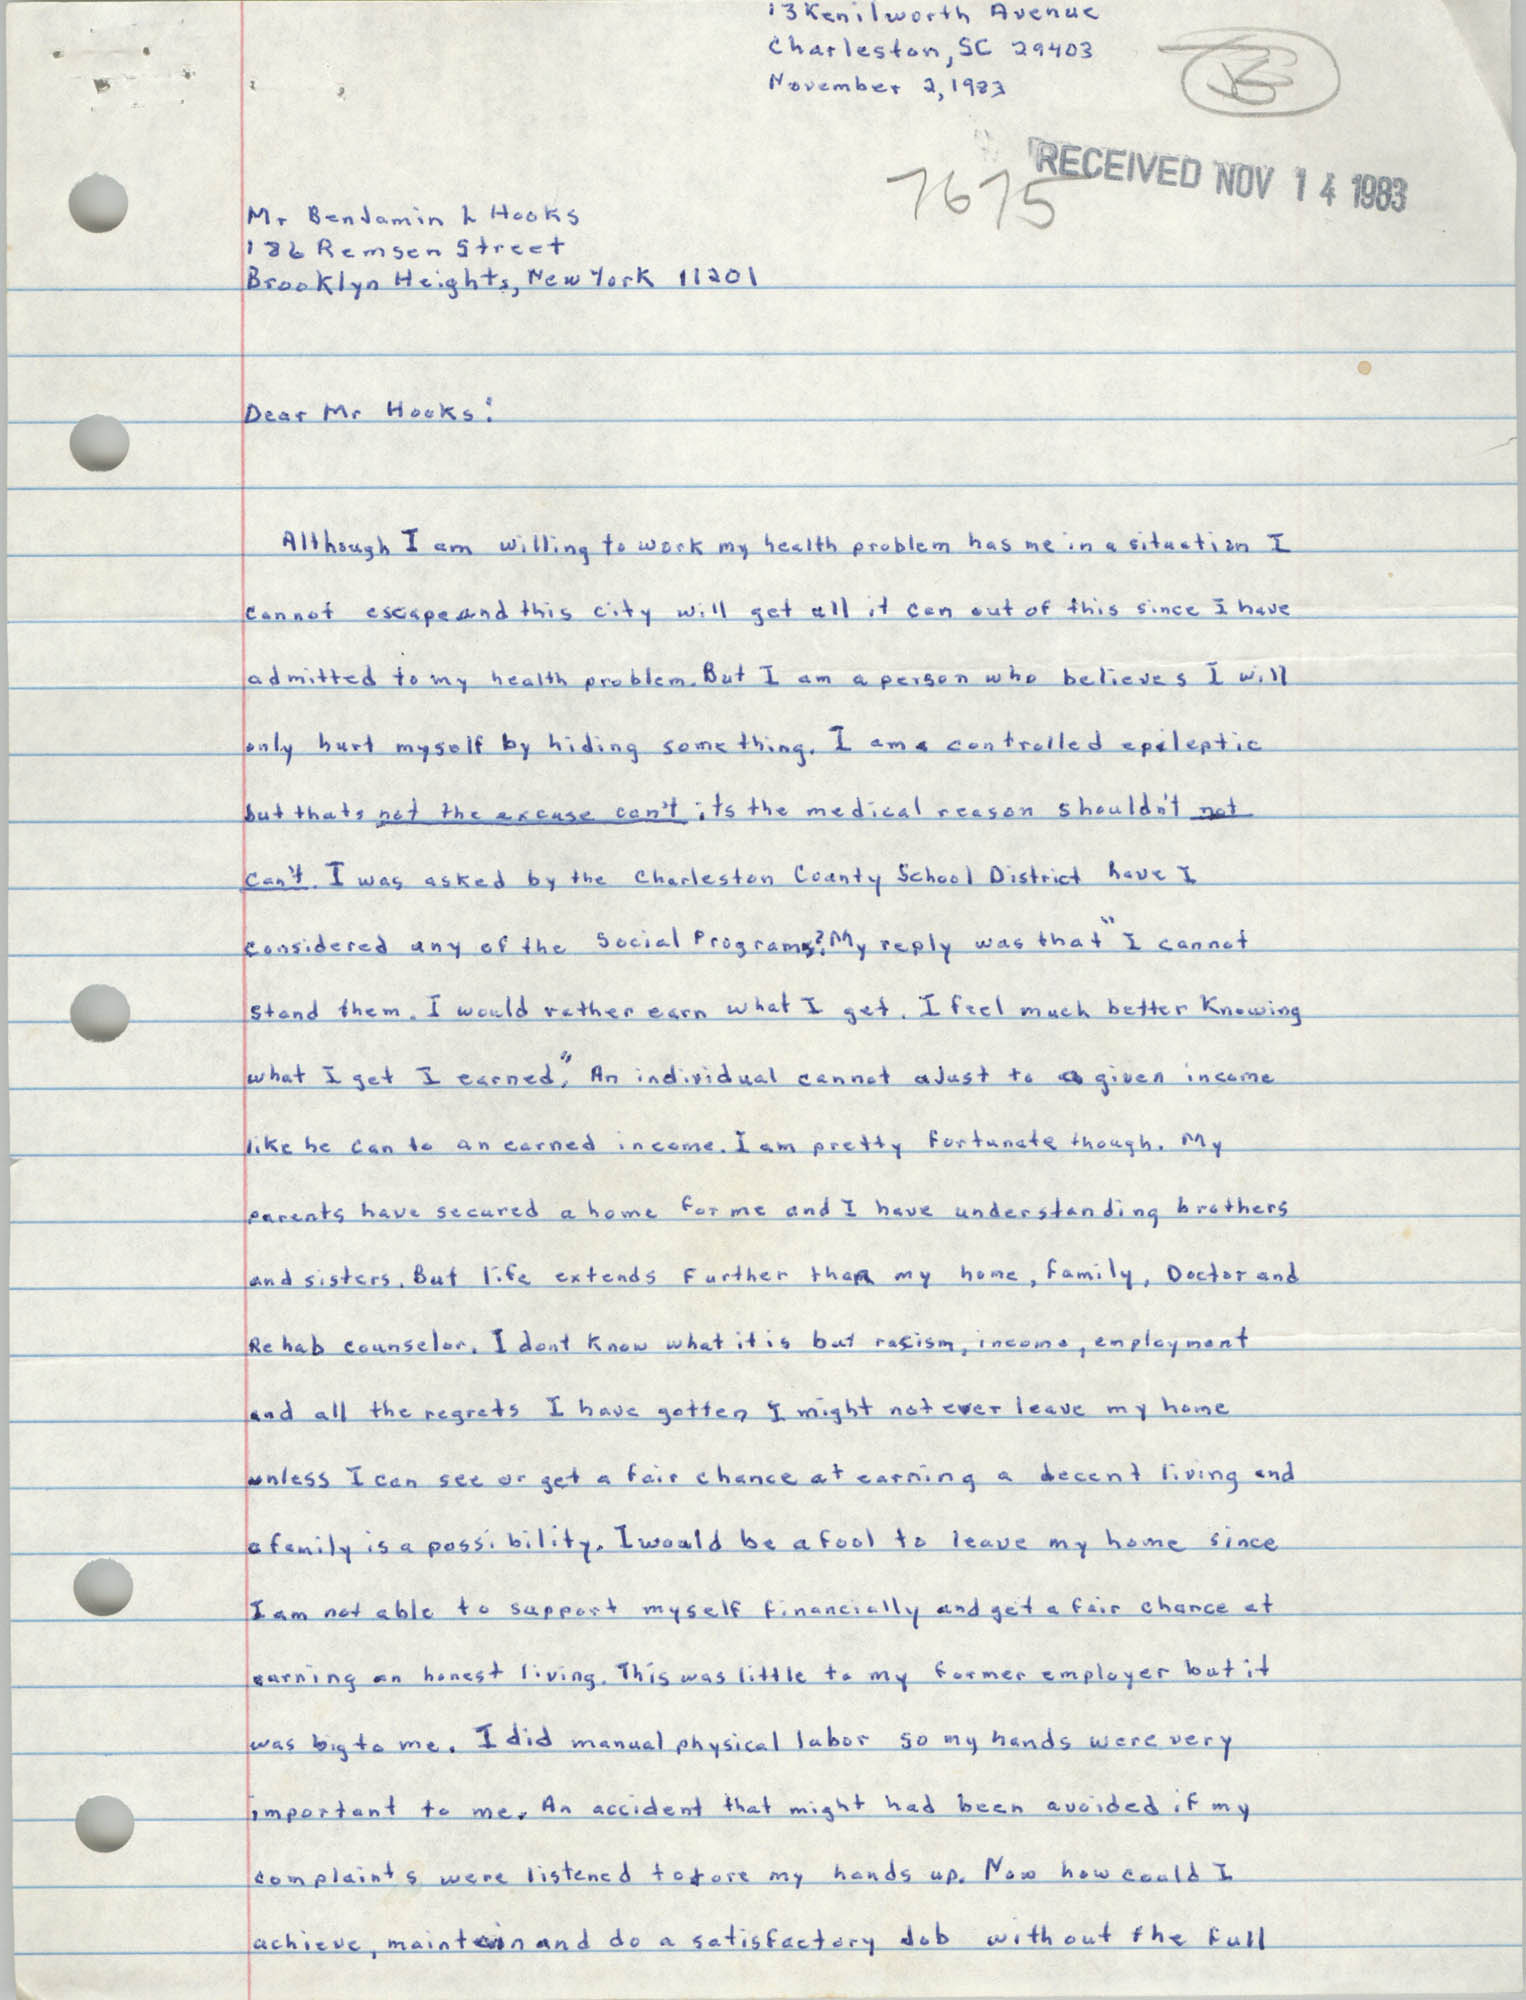 Letter from E. Michael Bonaparte to Benjamin L. Hooks, November 2, 1983